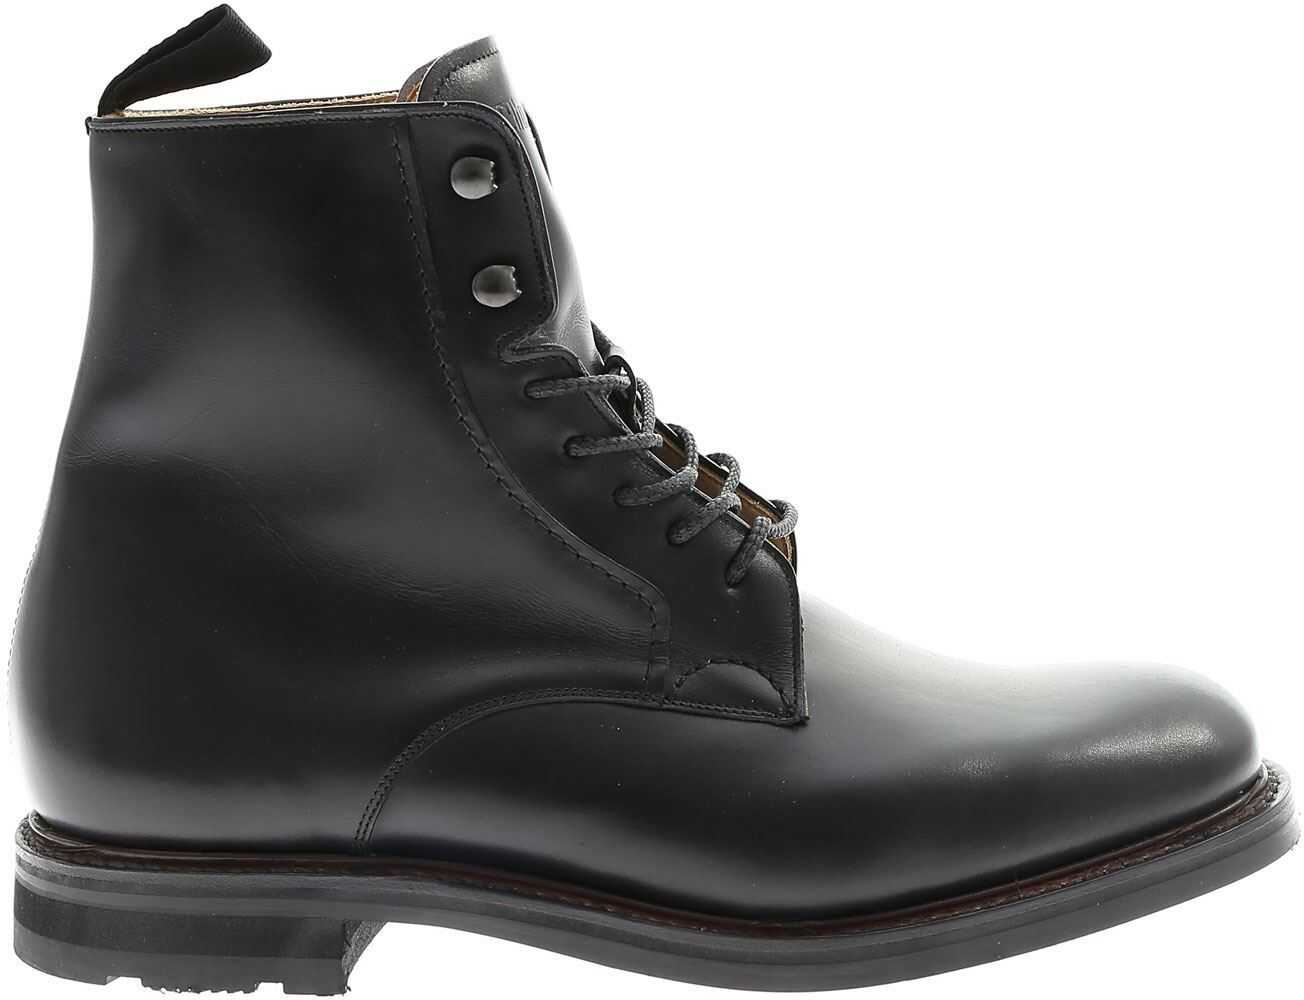 Wootton Ankle Boots In Black thumbnail